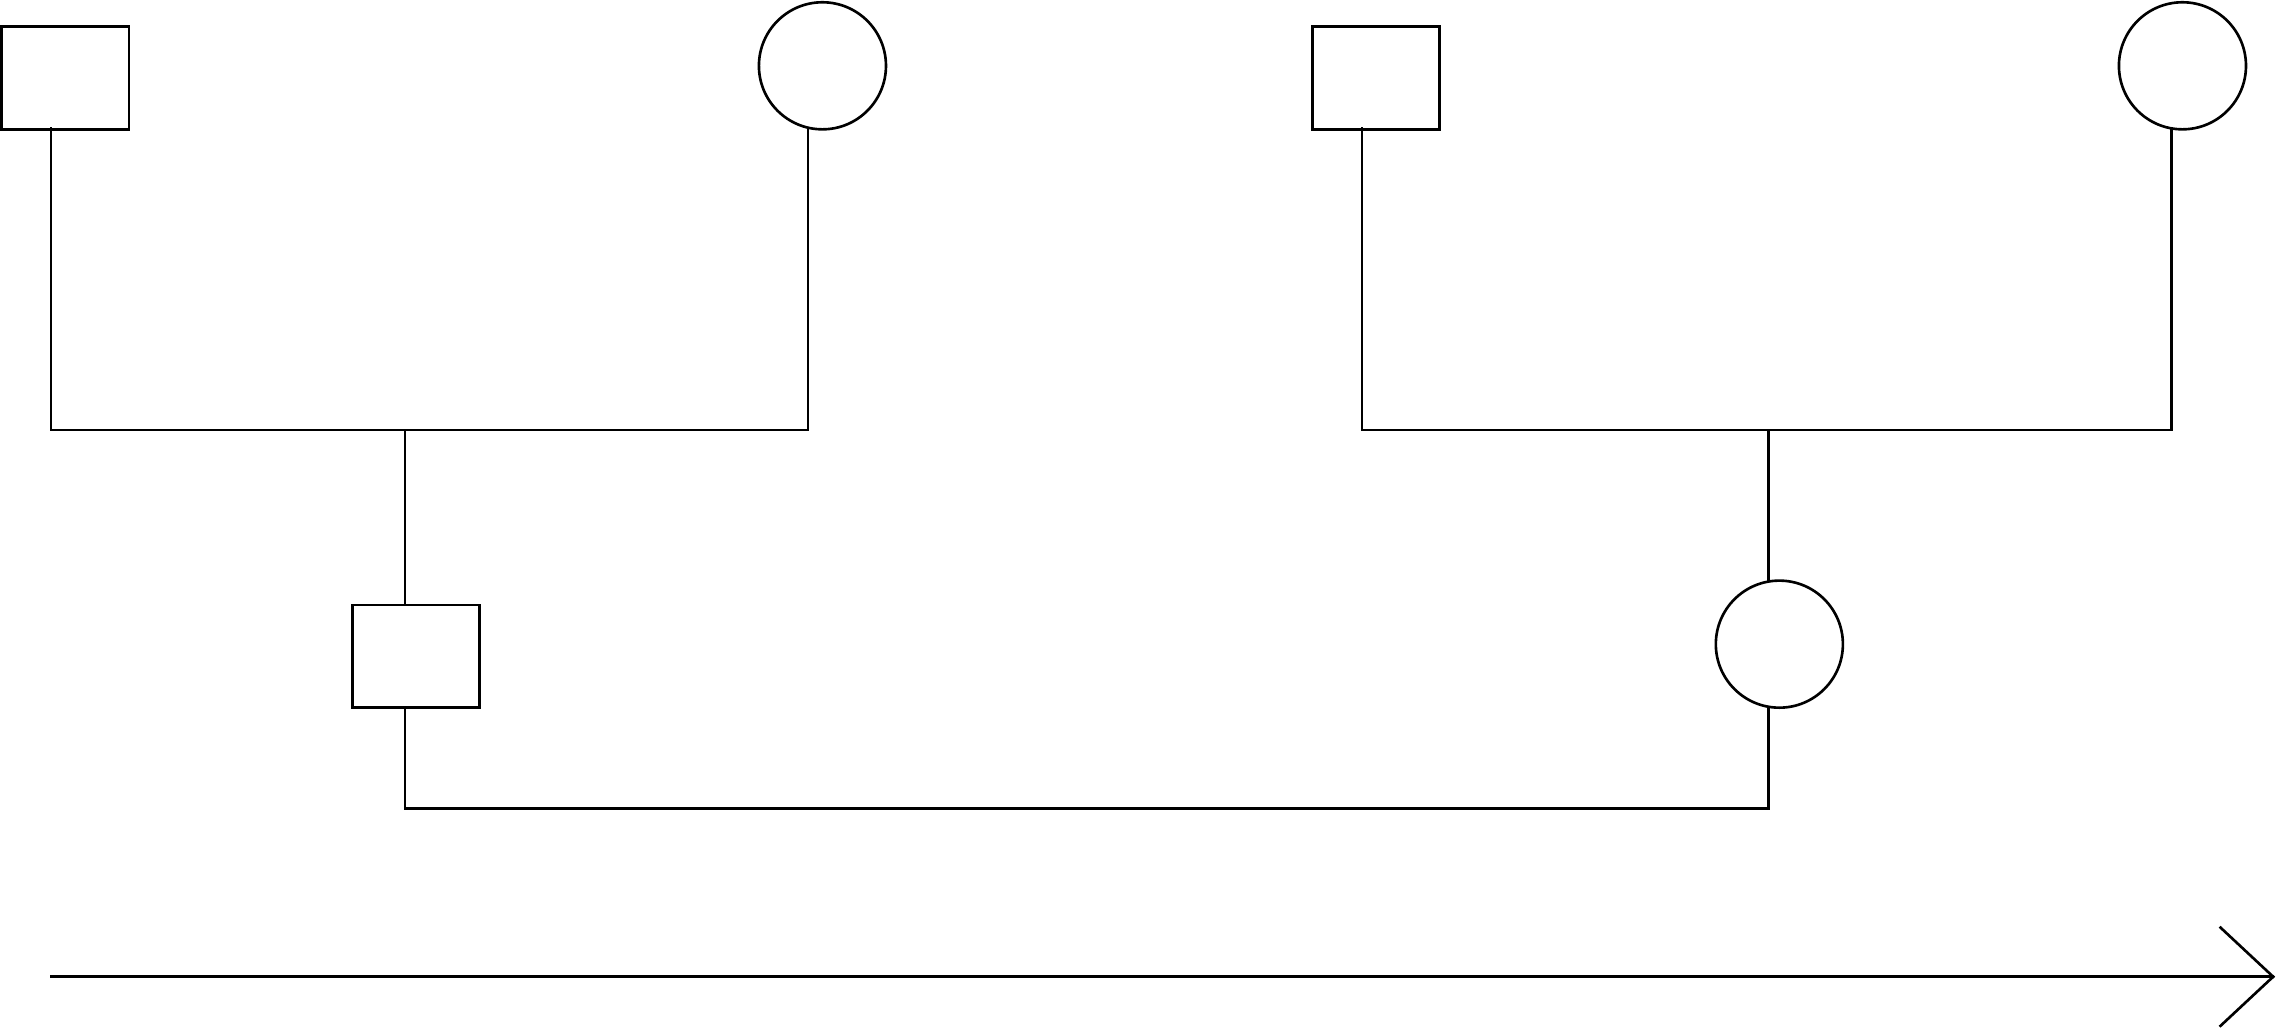 free ecomap template for word - blank genogram template free download